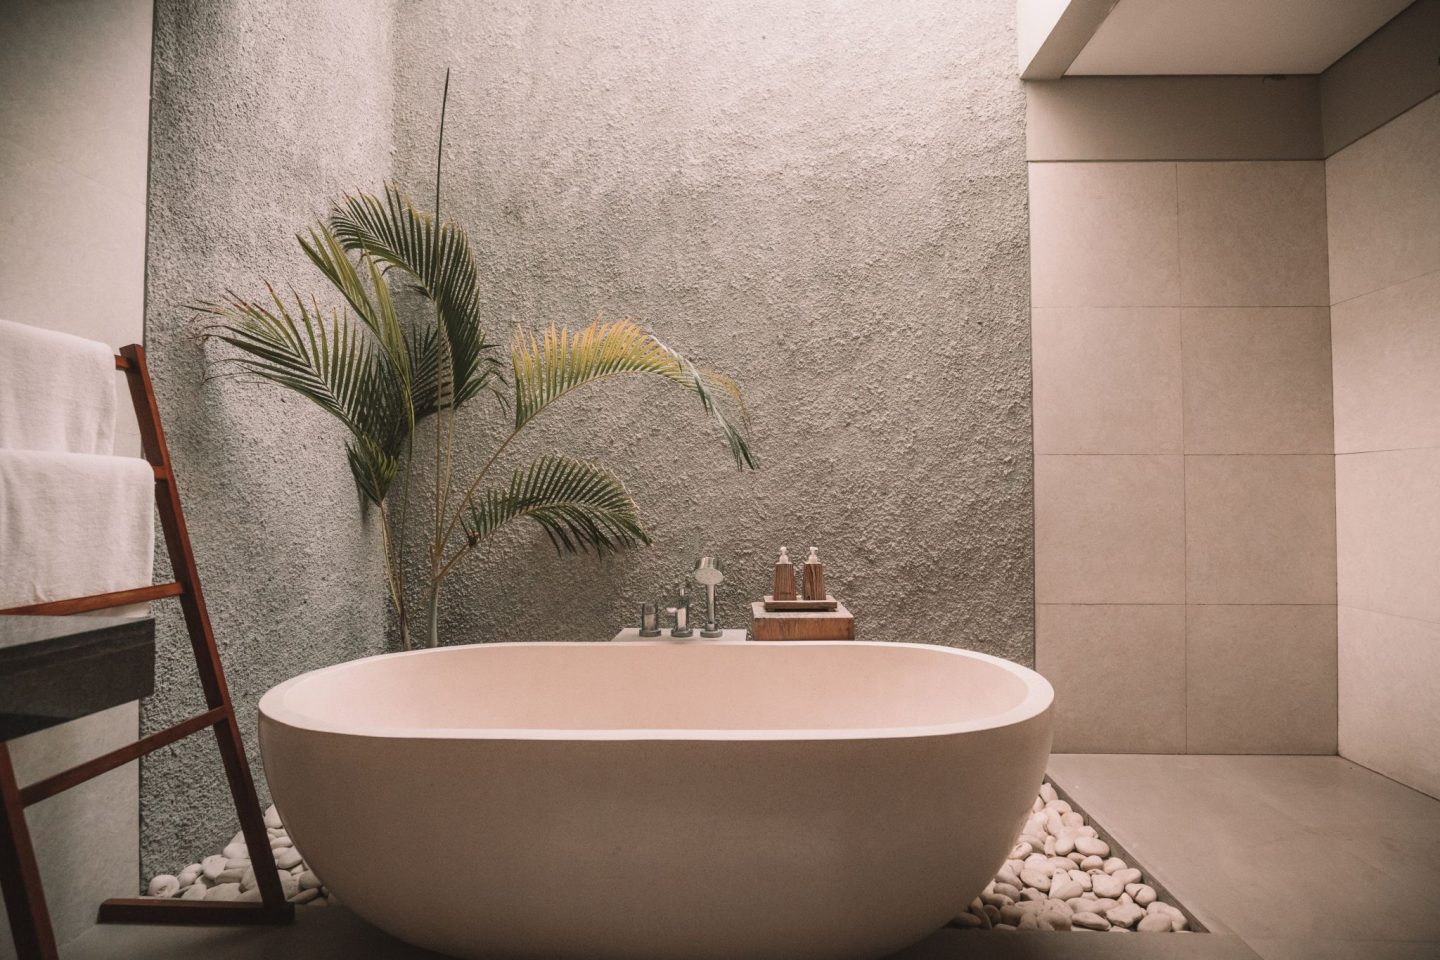 5 BEST INDOORS PLANTS FOR YOUR BATHROOM